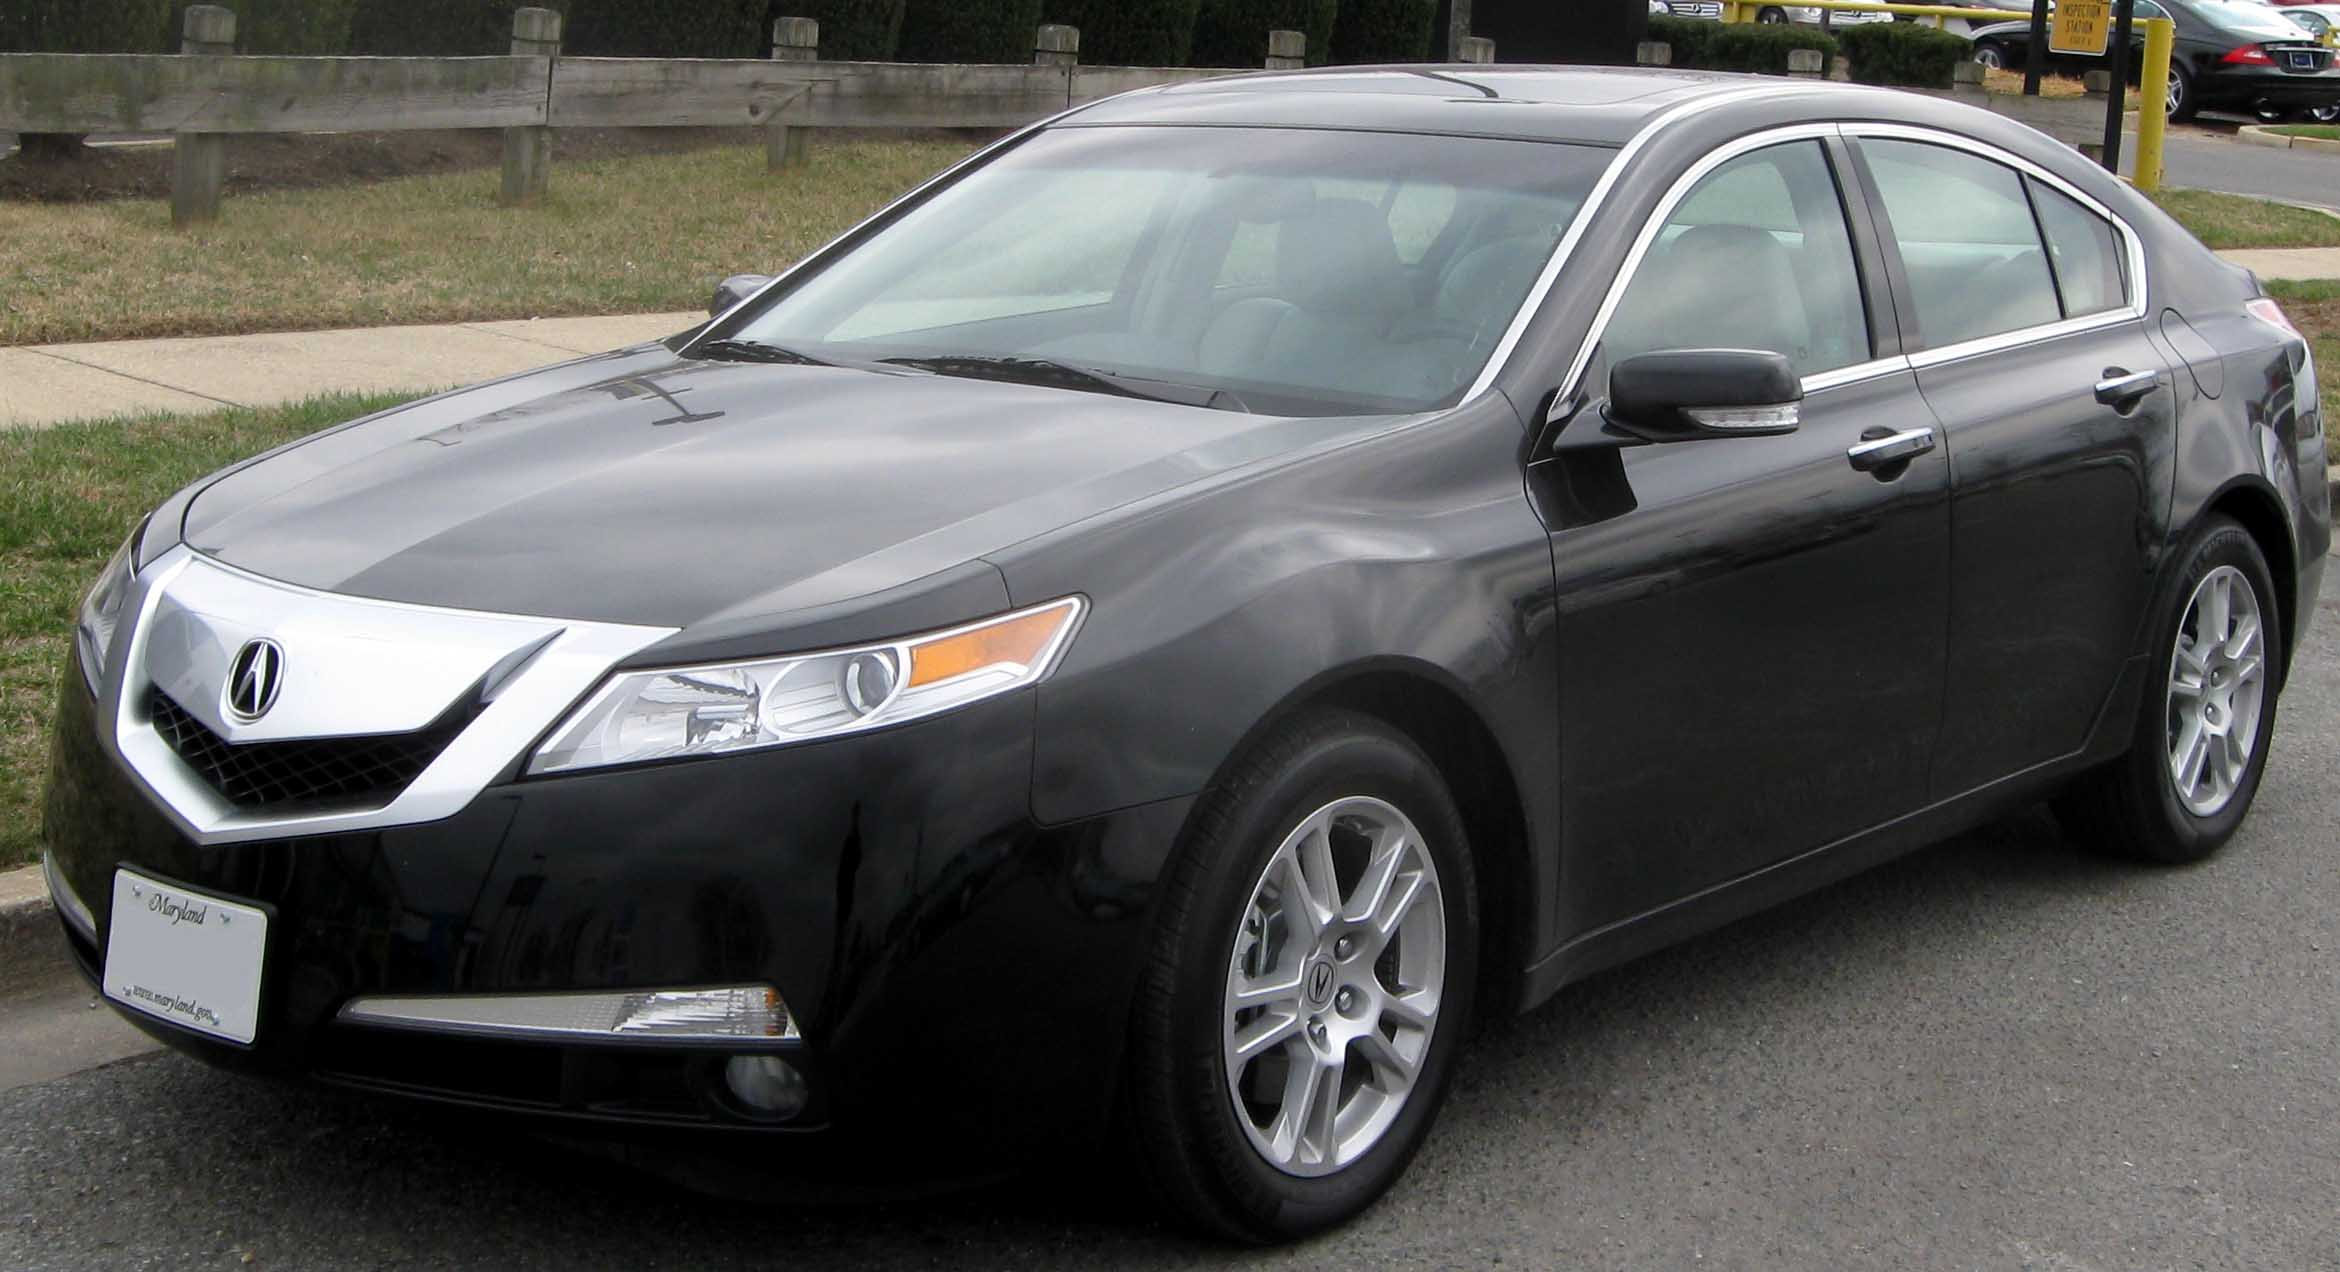 acura tl iv 2009 pictures